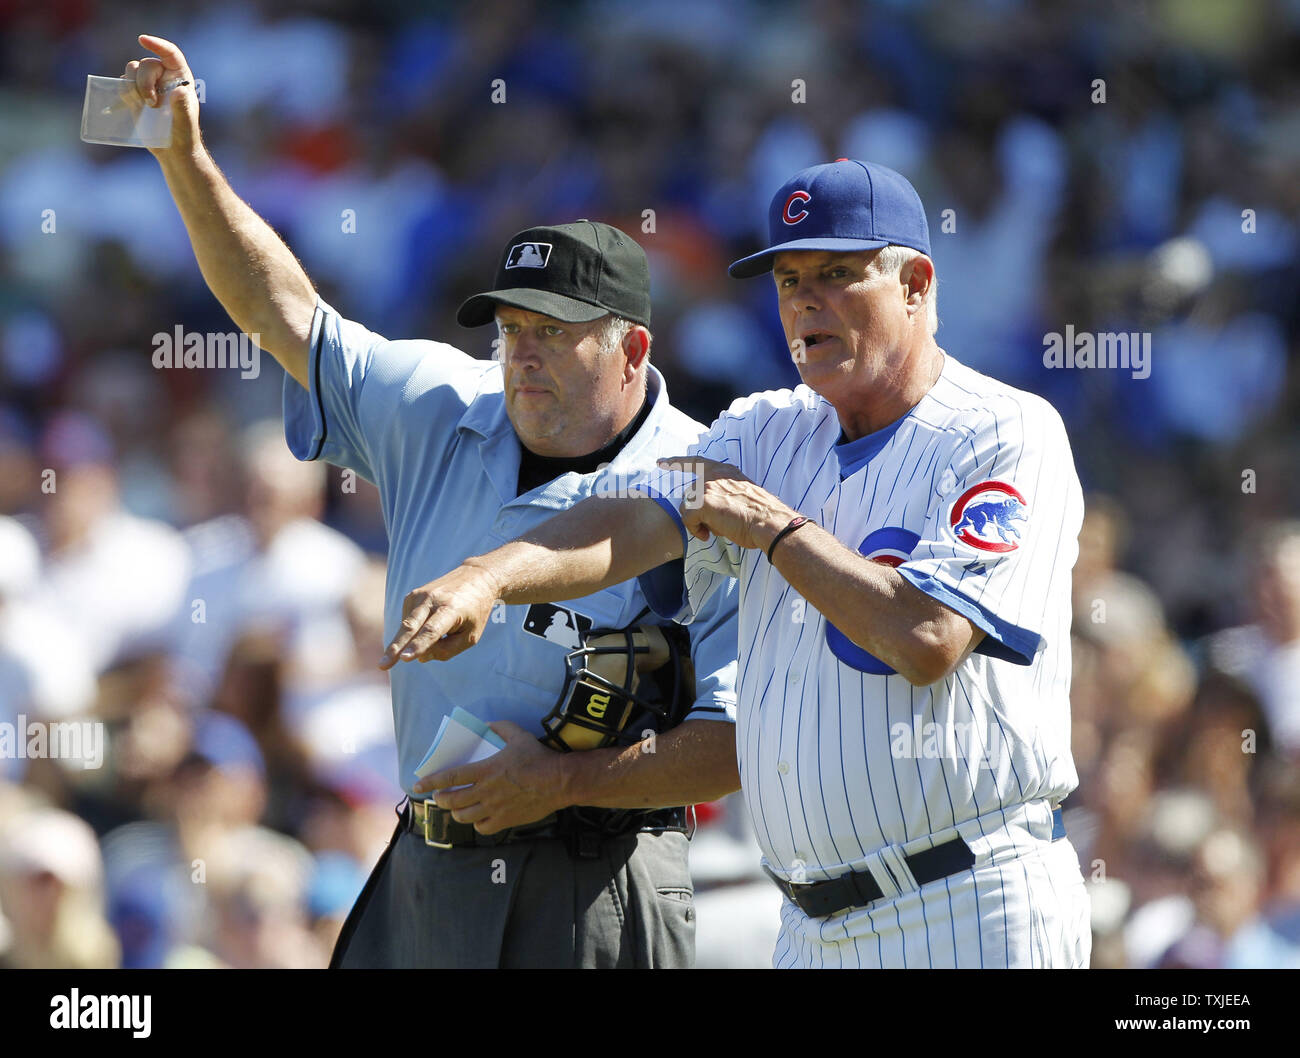 Chicago Cubs manager Lou Piniella (R) stands next to home